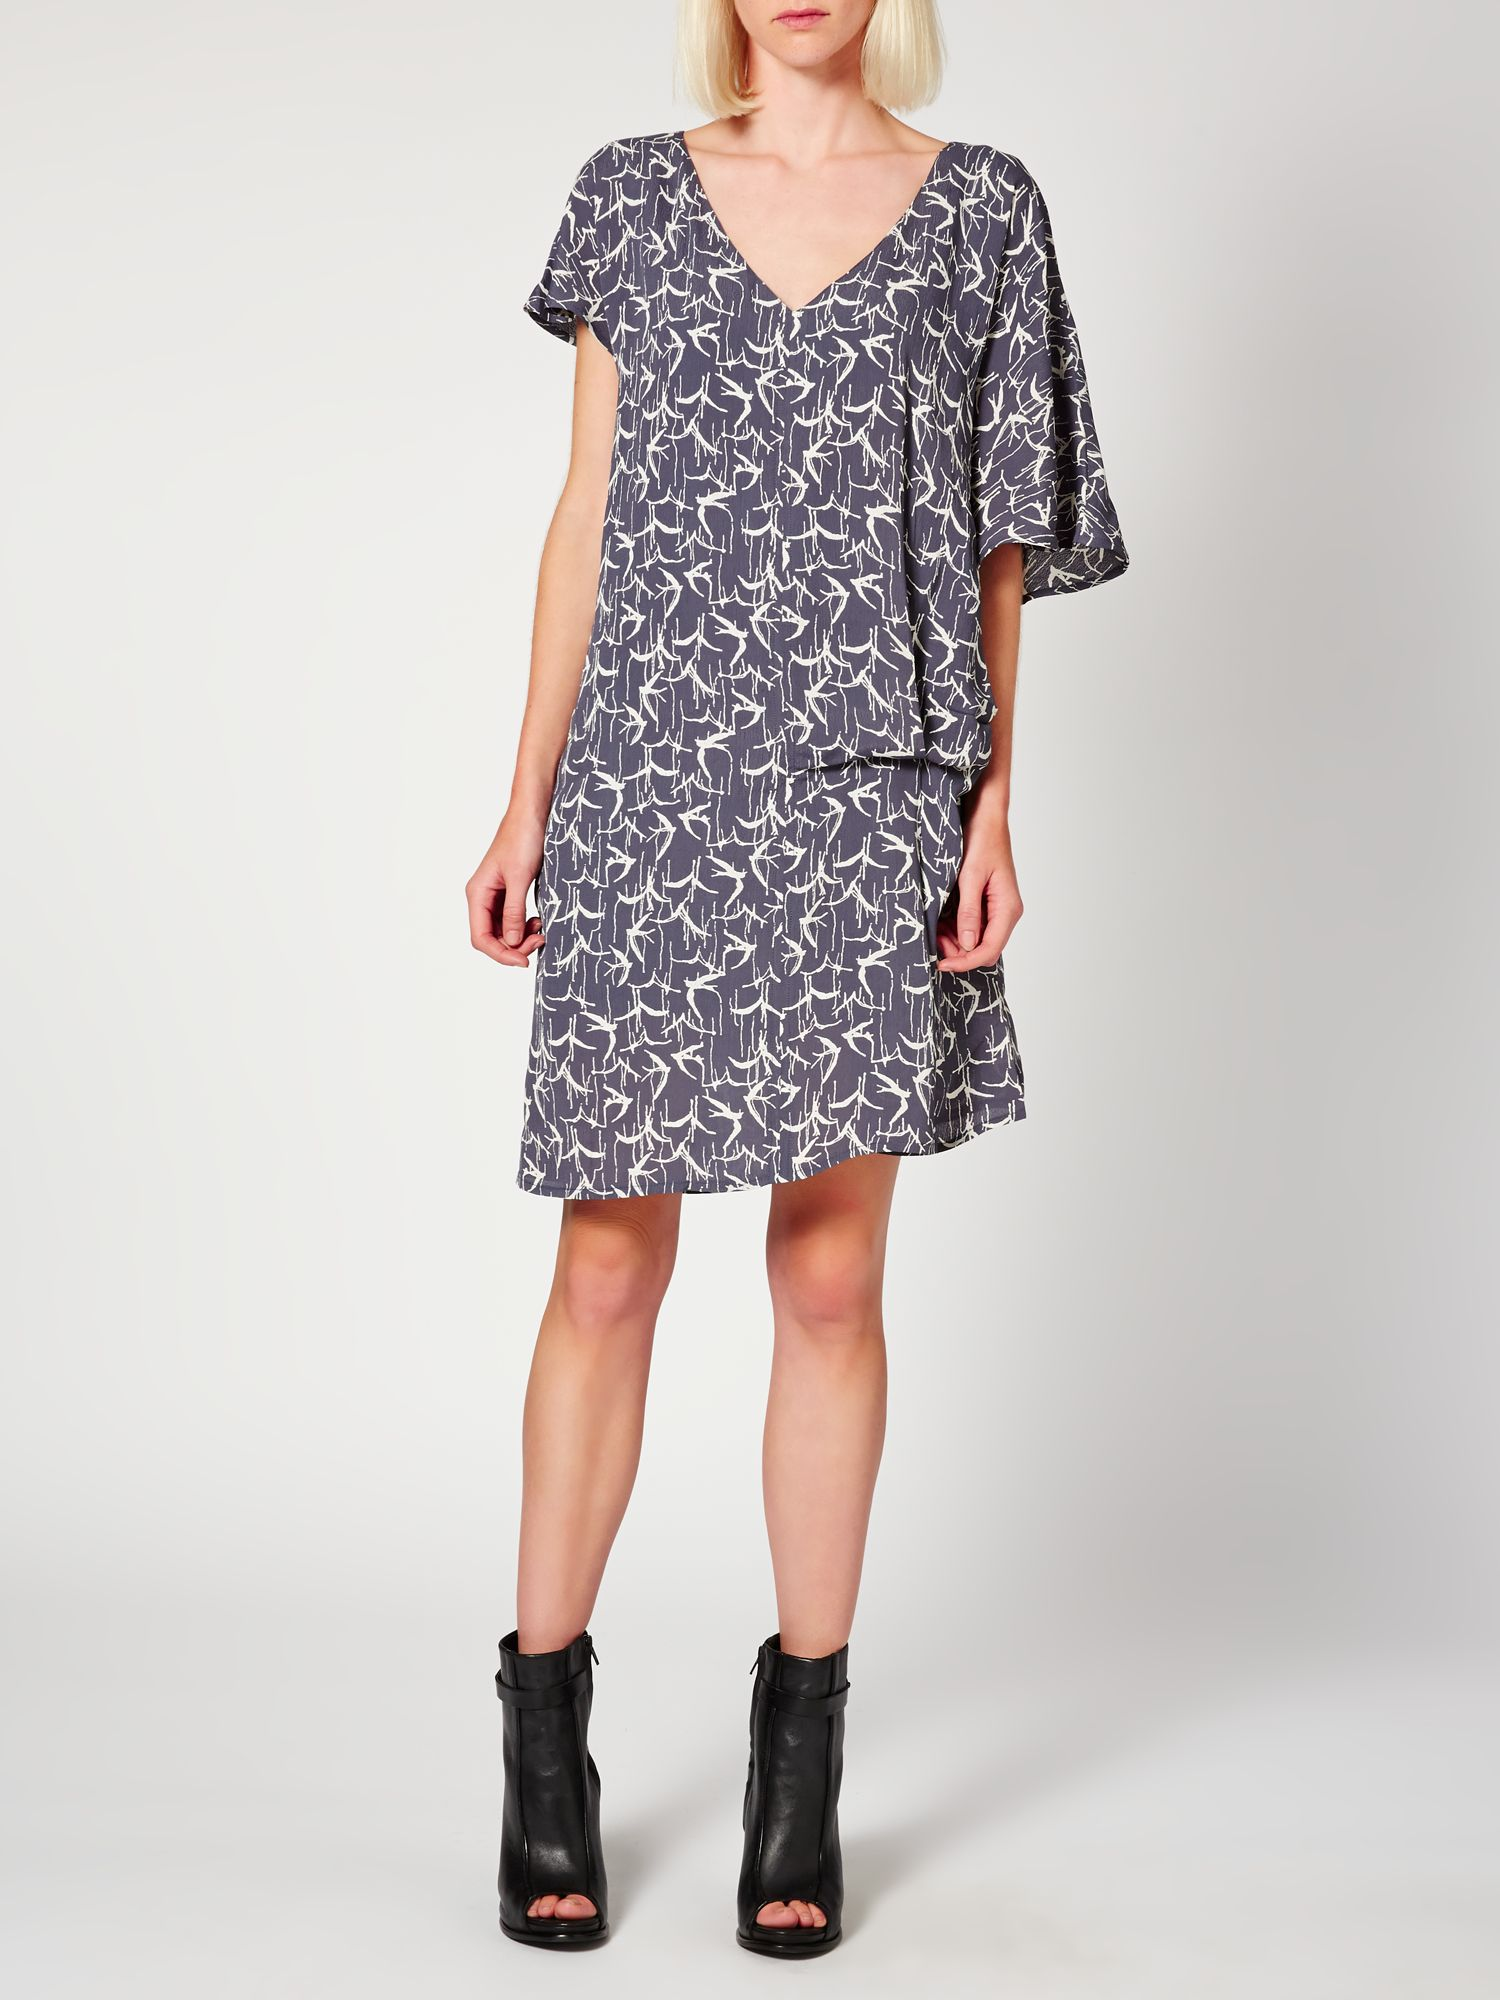 Inky bird print dress